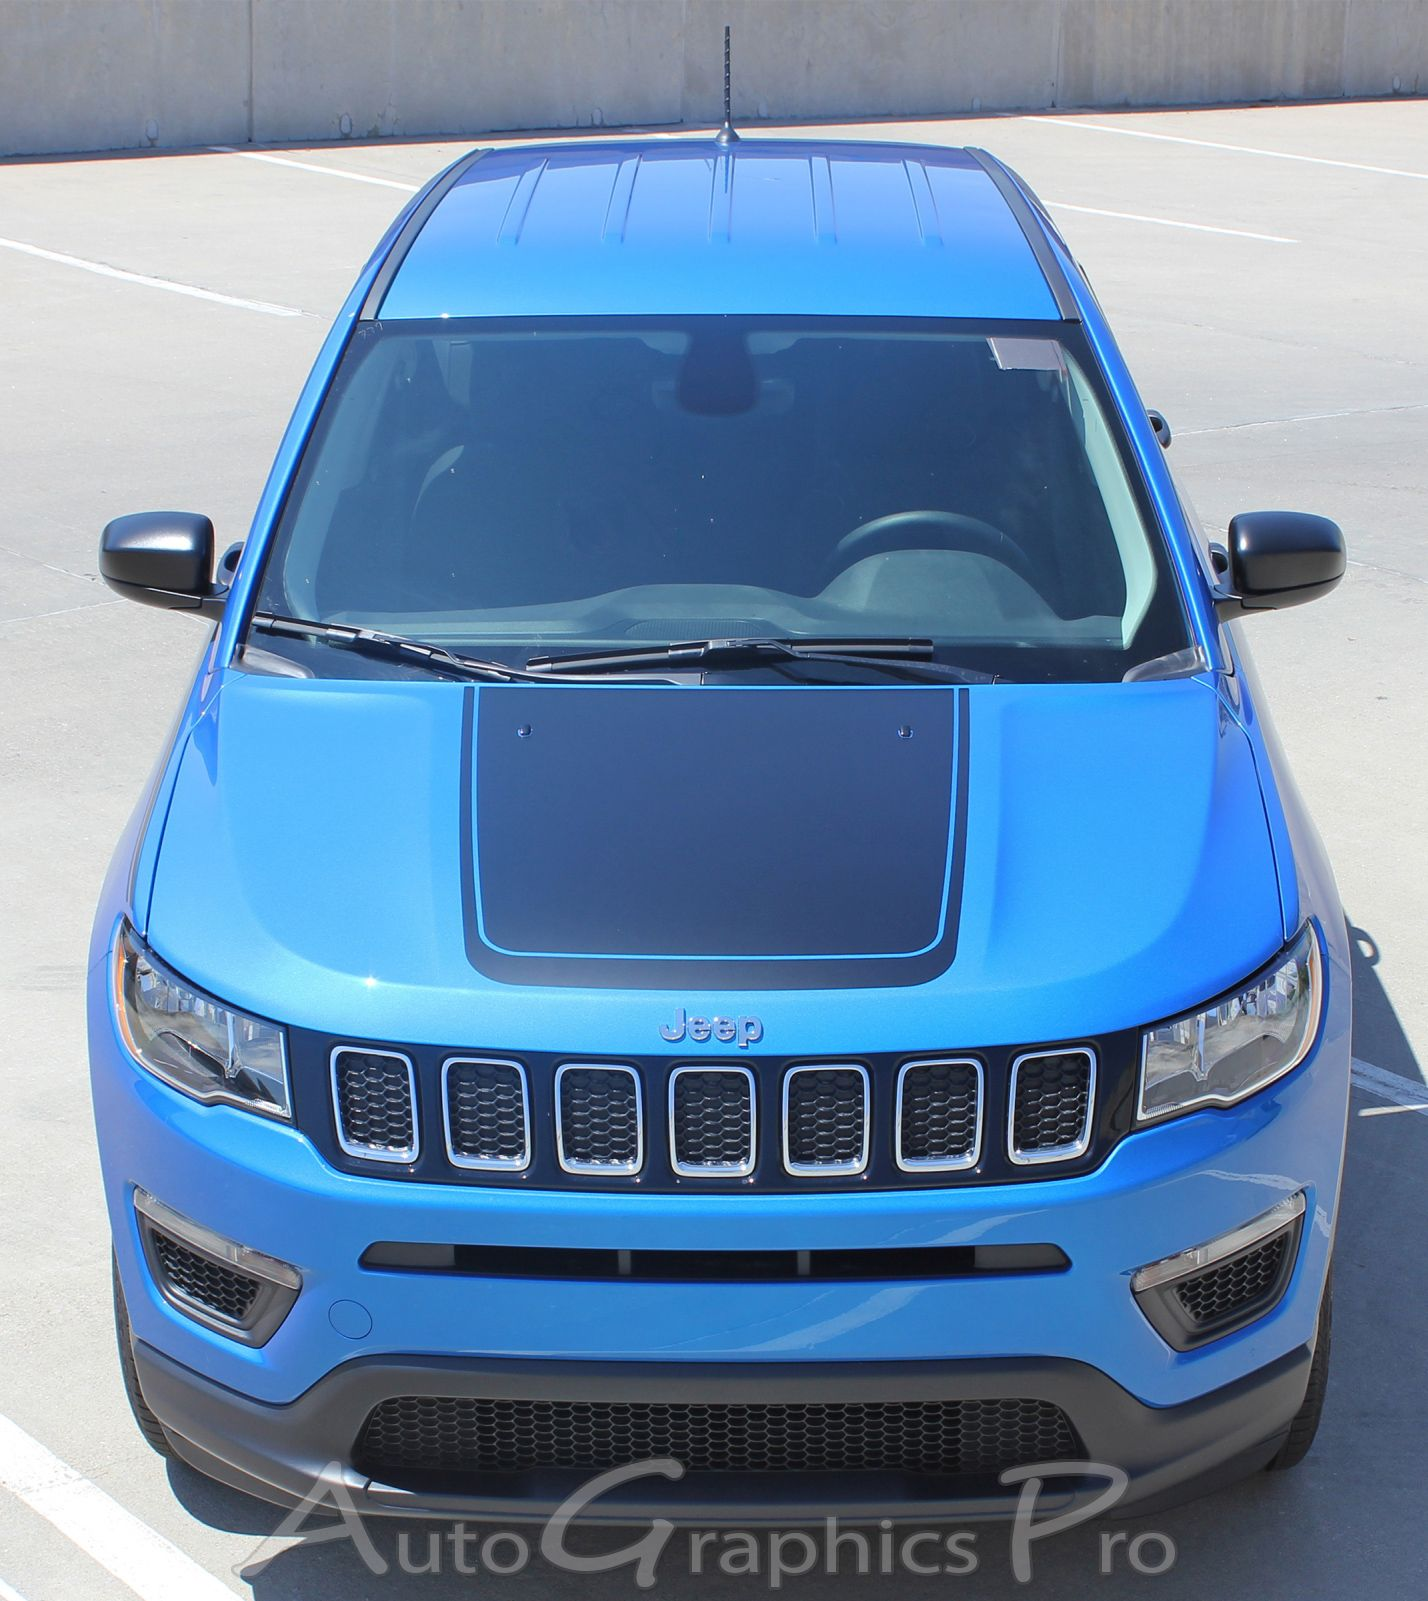 2019 Jeep Compass Prices Reviews Pictures U S News World